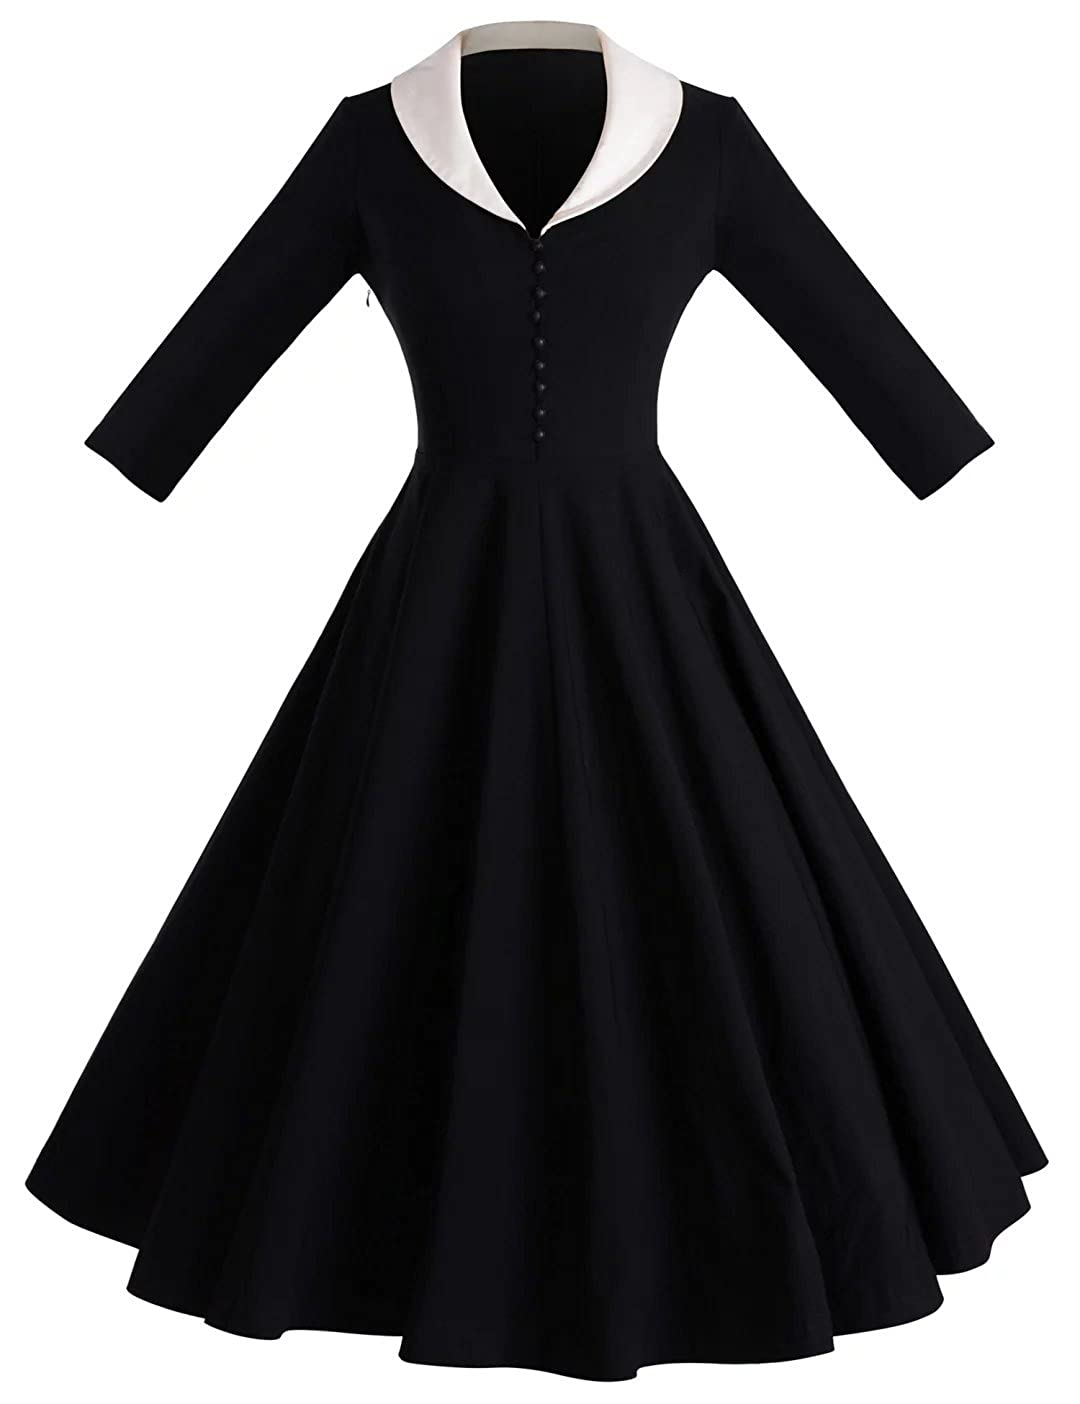 Rockabilly Dresses | Rockabilly Clothing | Viva Las Vegas GownTown Womens 1950s Cape Collar Vintage Swing Stretchy Dresses $35.99 AT vintagedancer.com